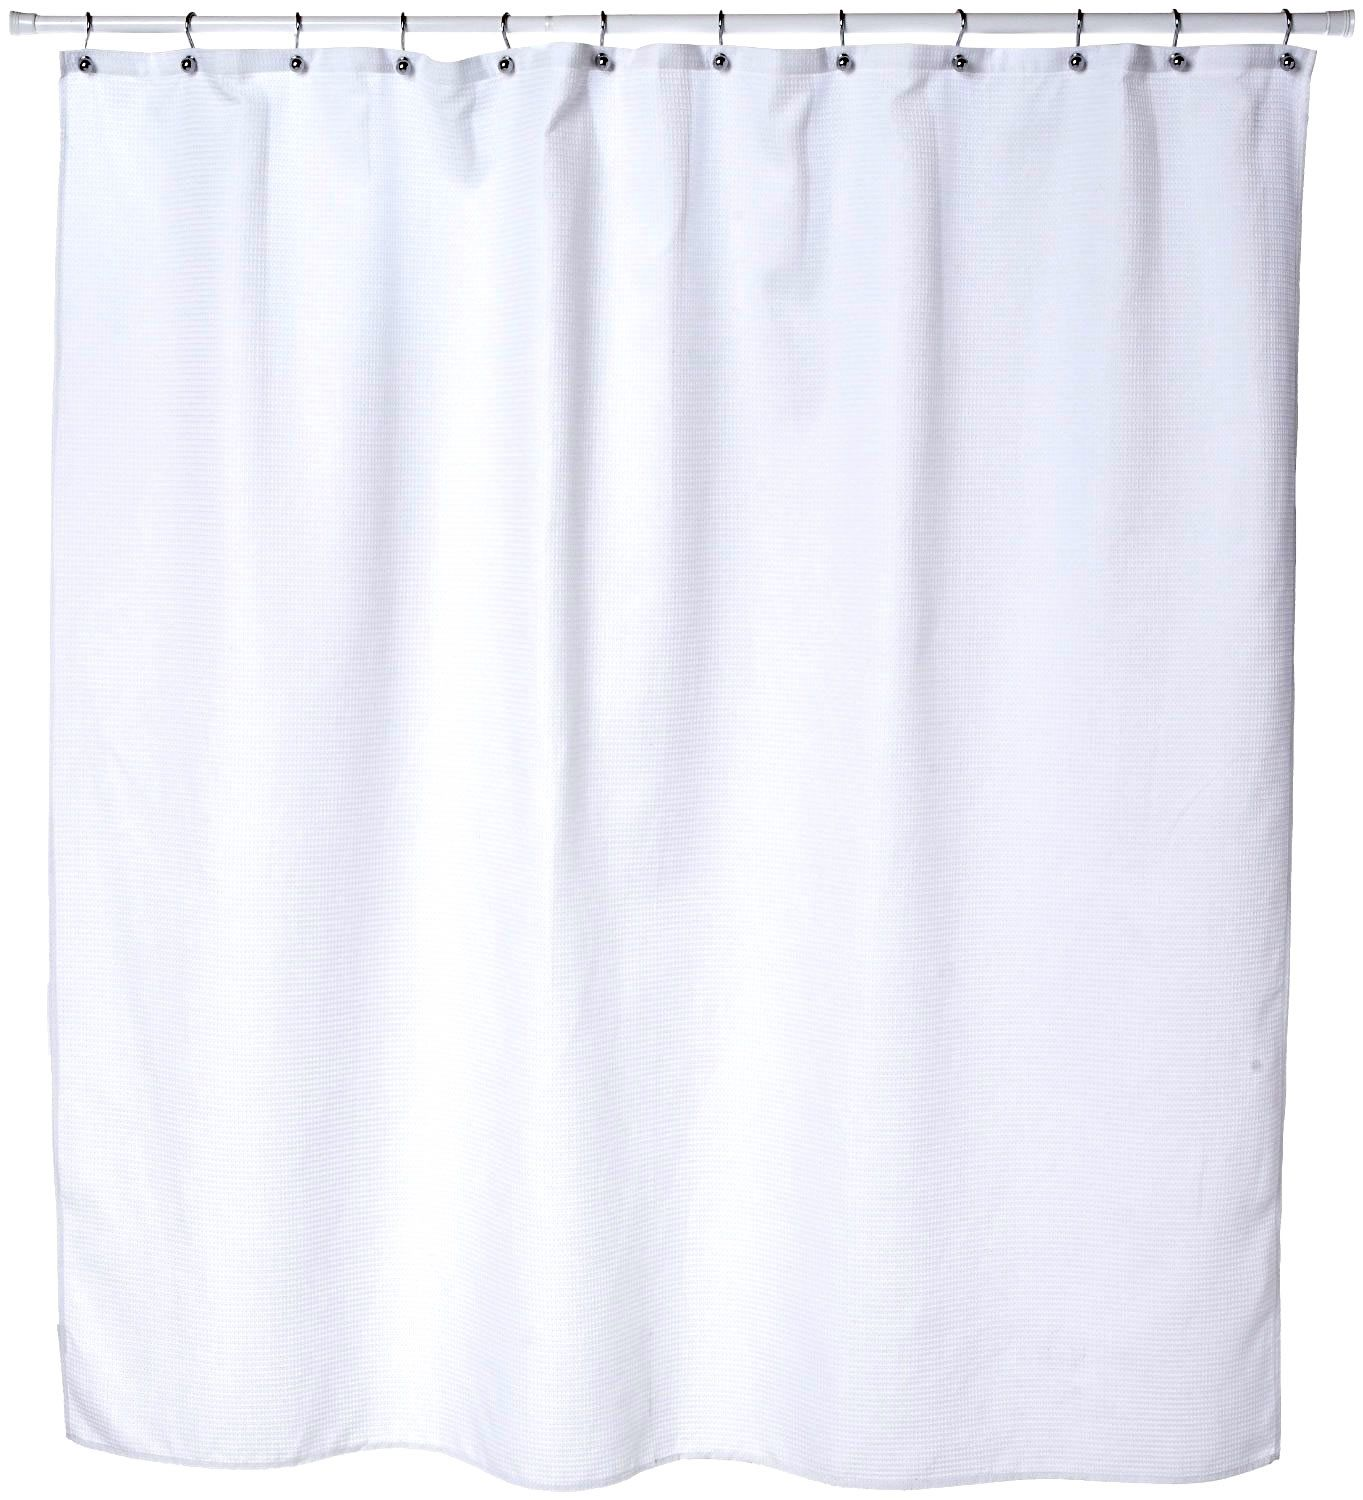 Got It Cotton Waffle Weave Shower Curtain Liner From Bed Bath